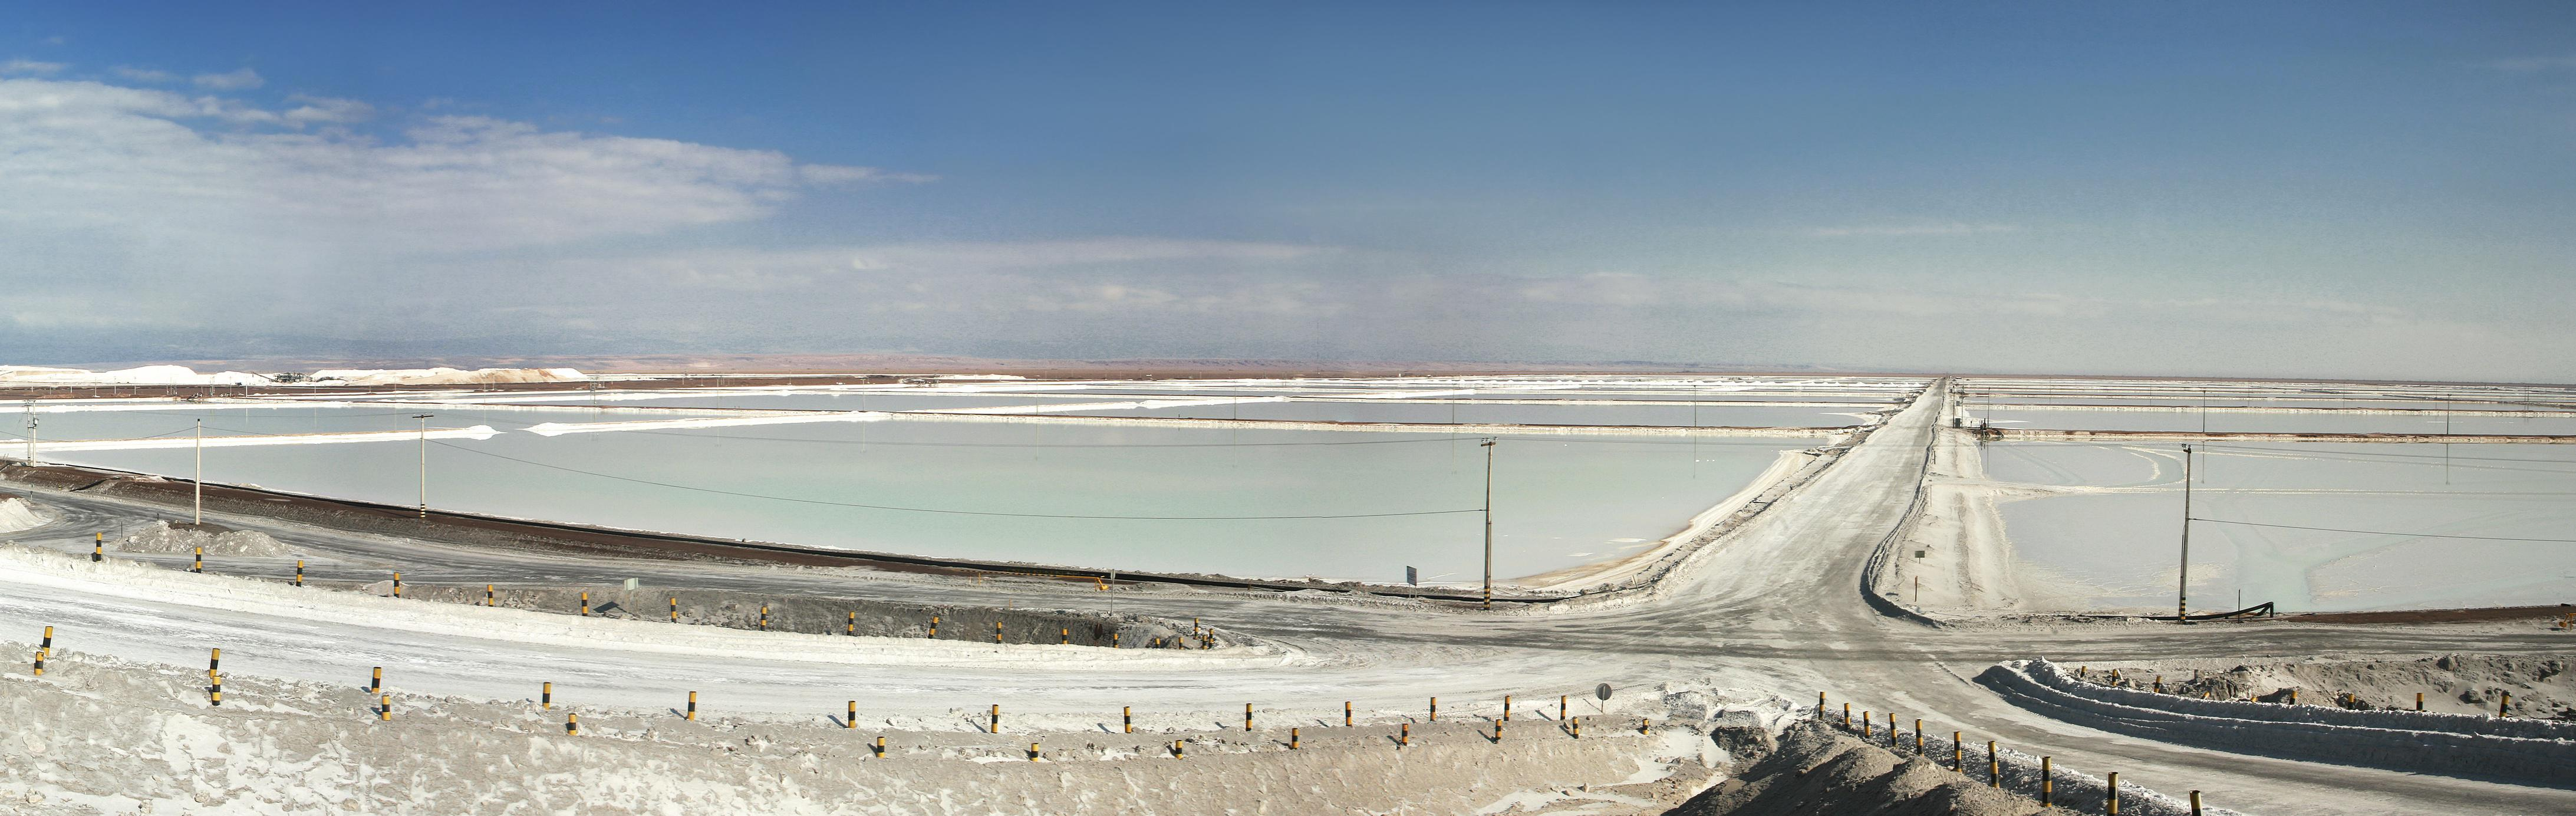 The Salar de Atacama salt flat in the Andes mountain range in Chile is one of the largest reserves of lithium-brine in the world.